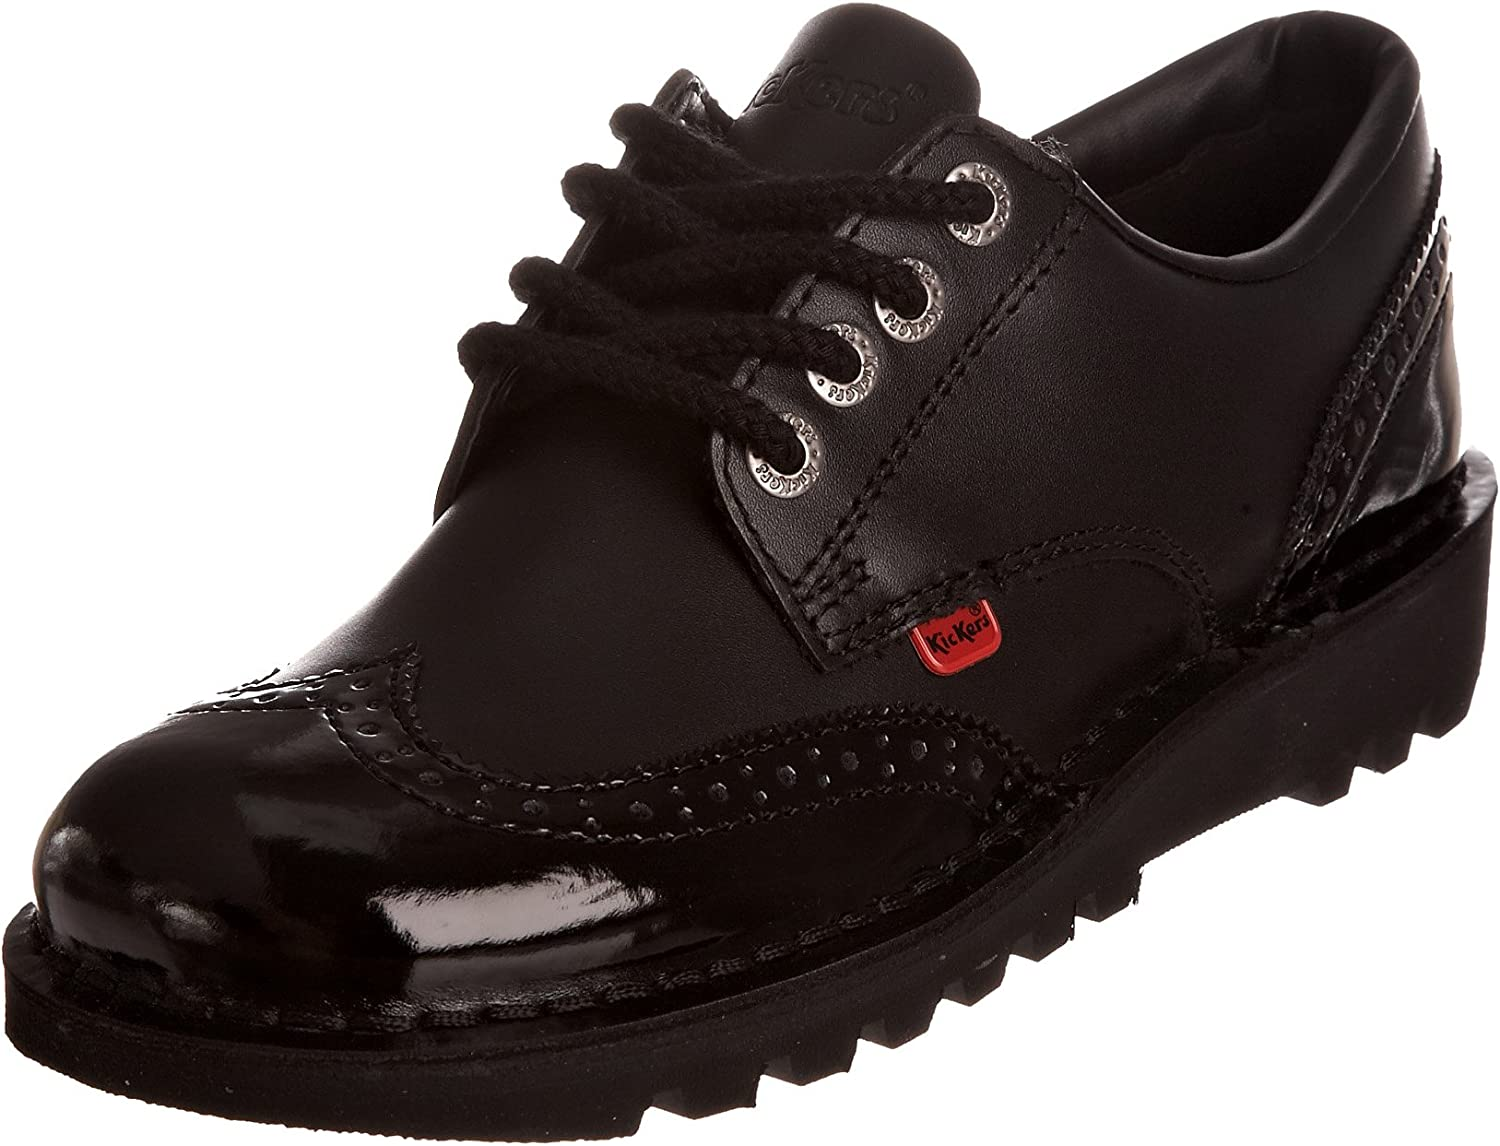 Kickers KICK LO BROGUE Ladies Patent Leather shoes Black